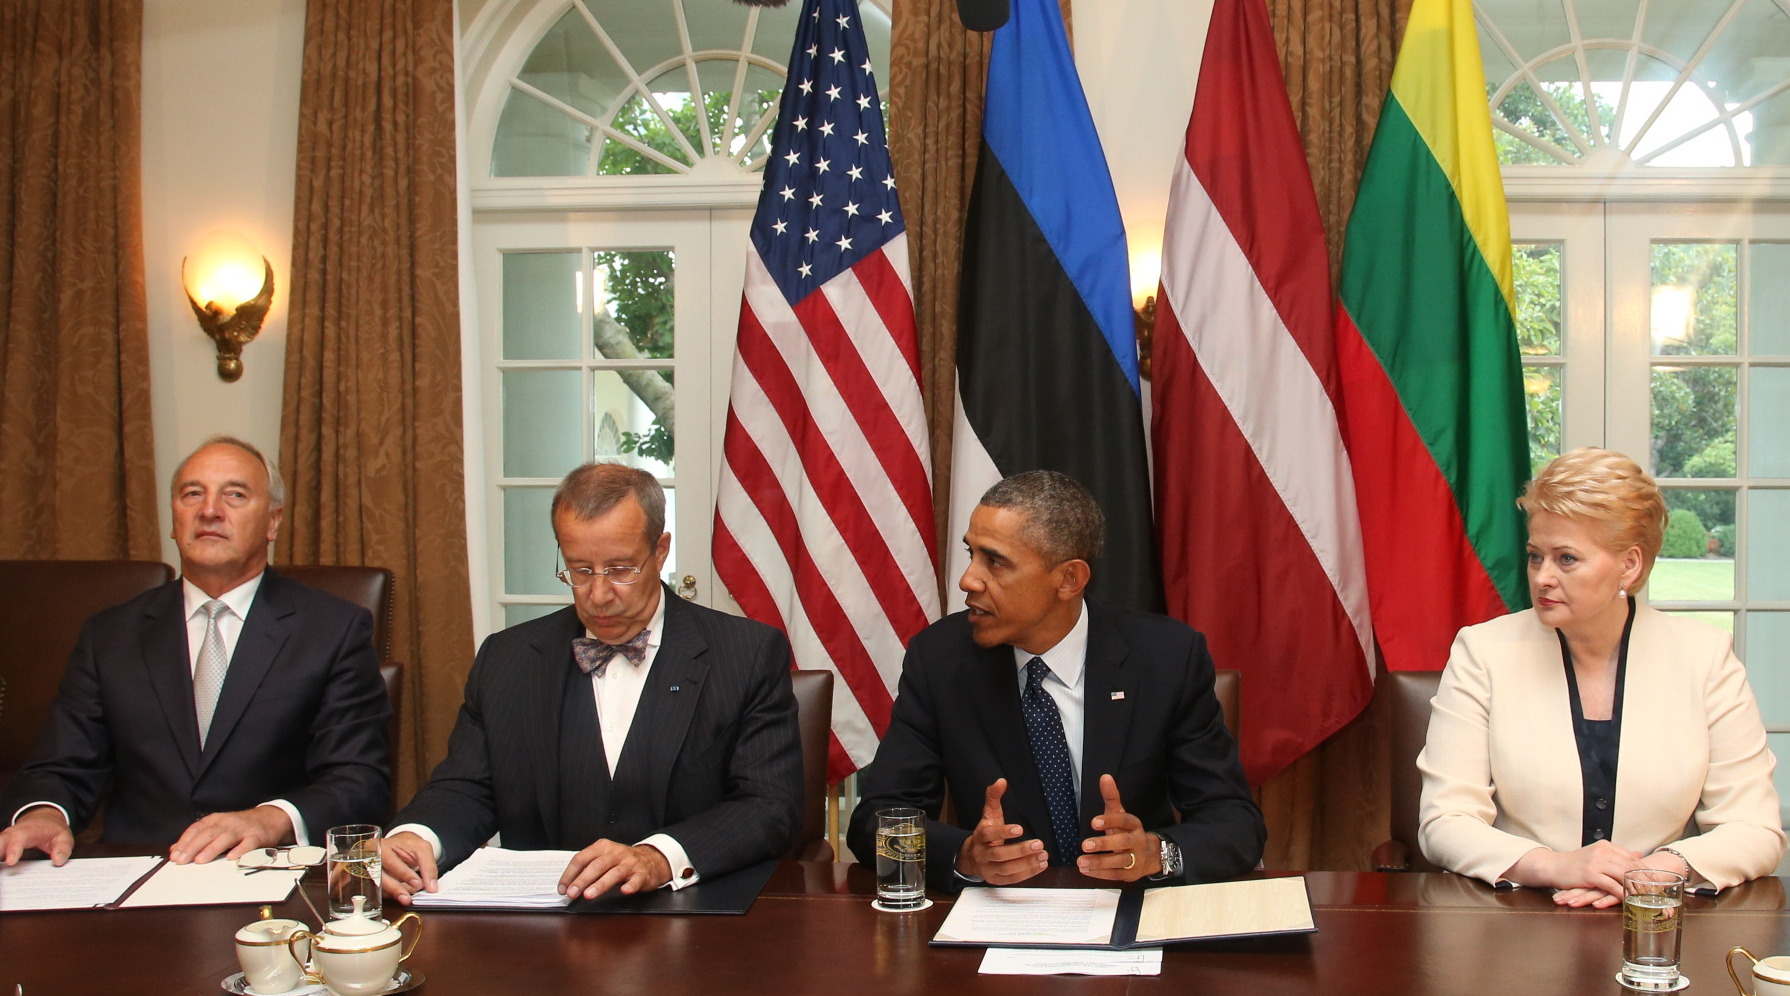 Obama meeting with Baltic leaders at White House